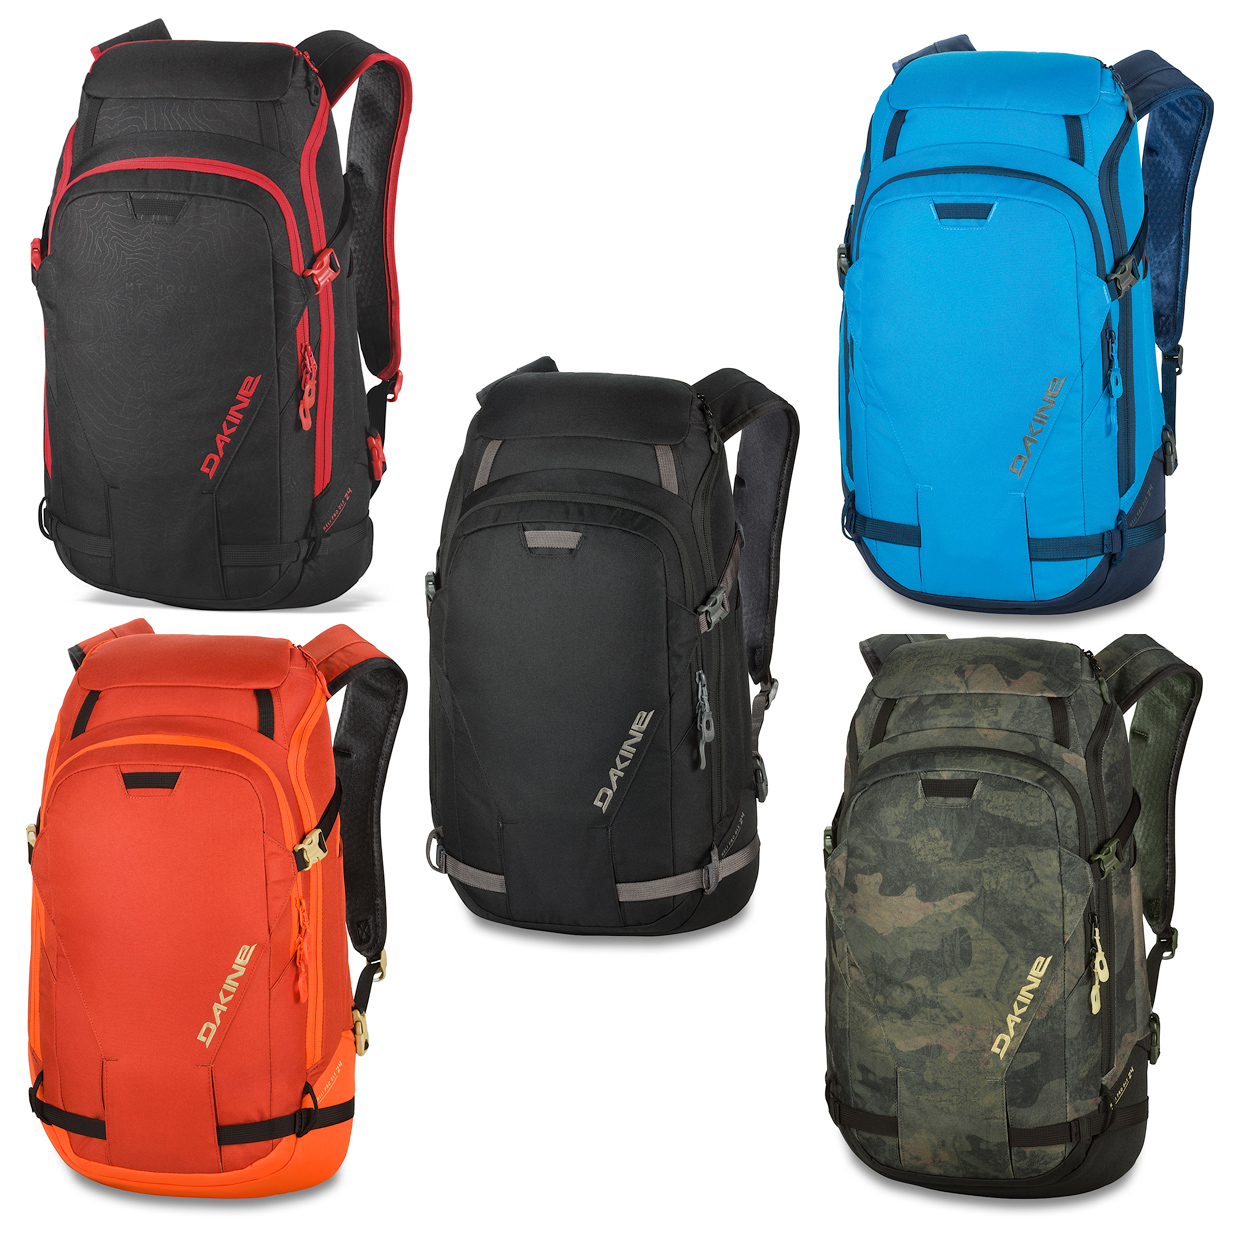 dakine heli pro dlx with 371469024514 on 231337923946 besides Dakine Womens Heli Pro DLX Snow Backpack 18L Highland WCamelbak  64215 also Search in addition Dakine Heli Pro 20l Gifford likewise Shopzilla emsrc pc product color pup e 16 pup id 434029033436.